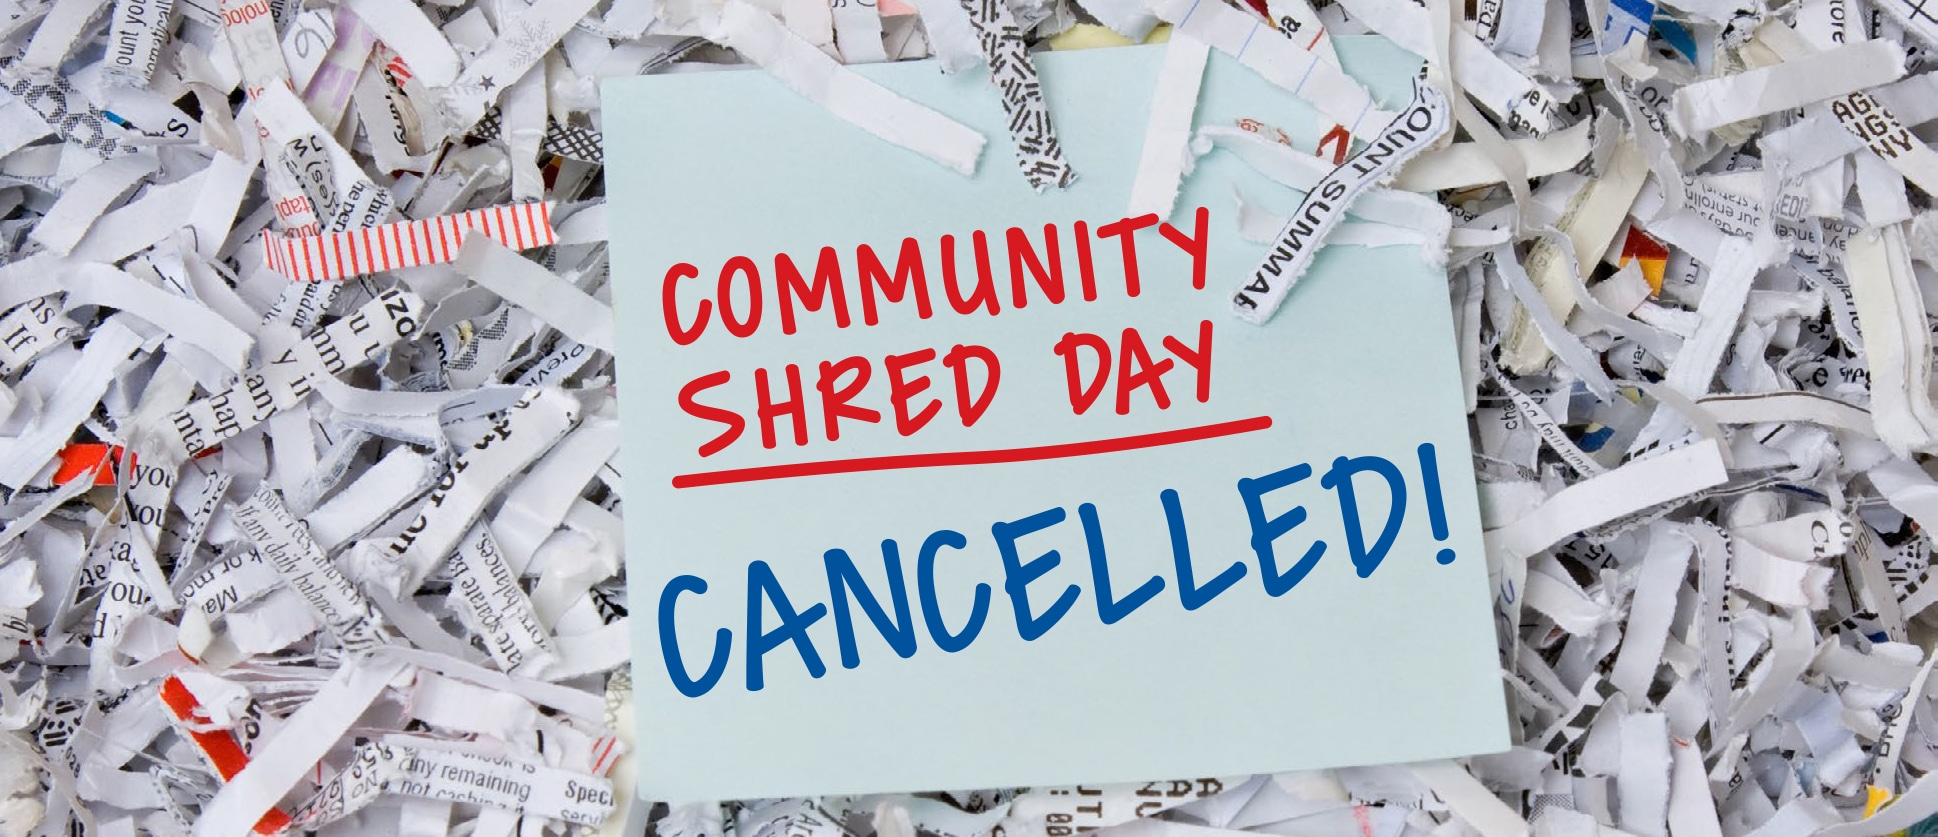 Shred Day cancelled